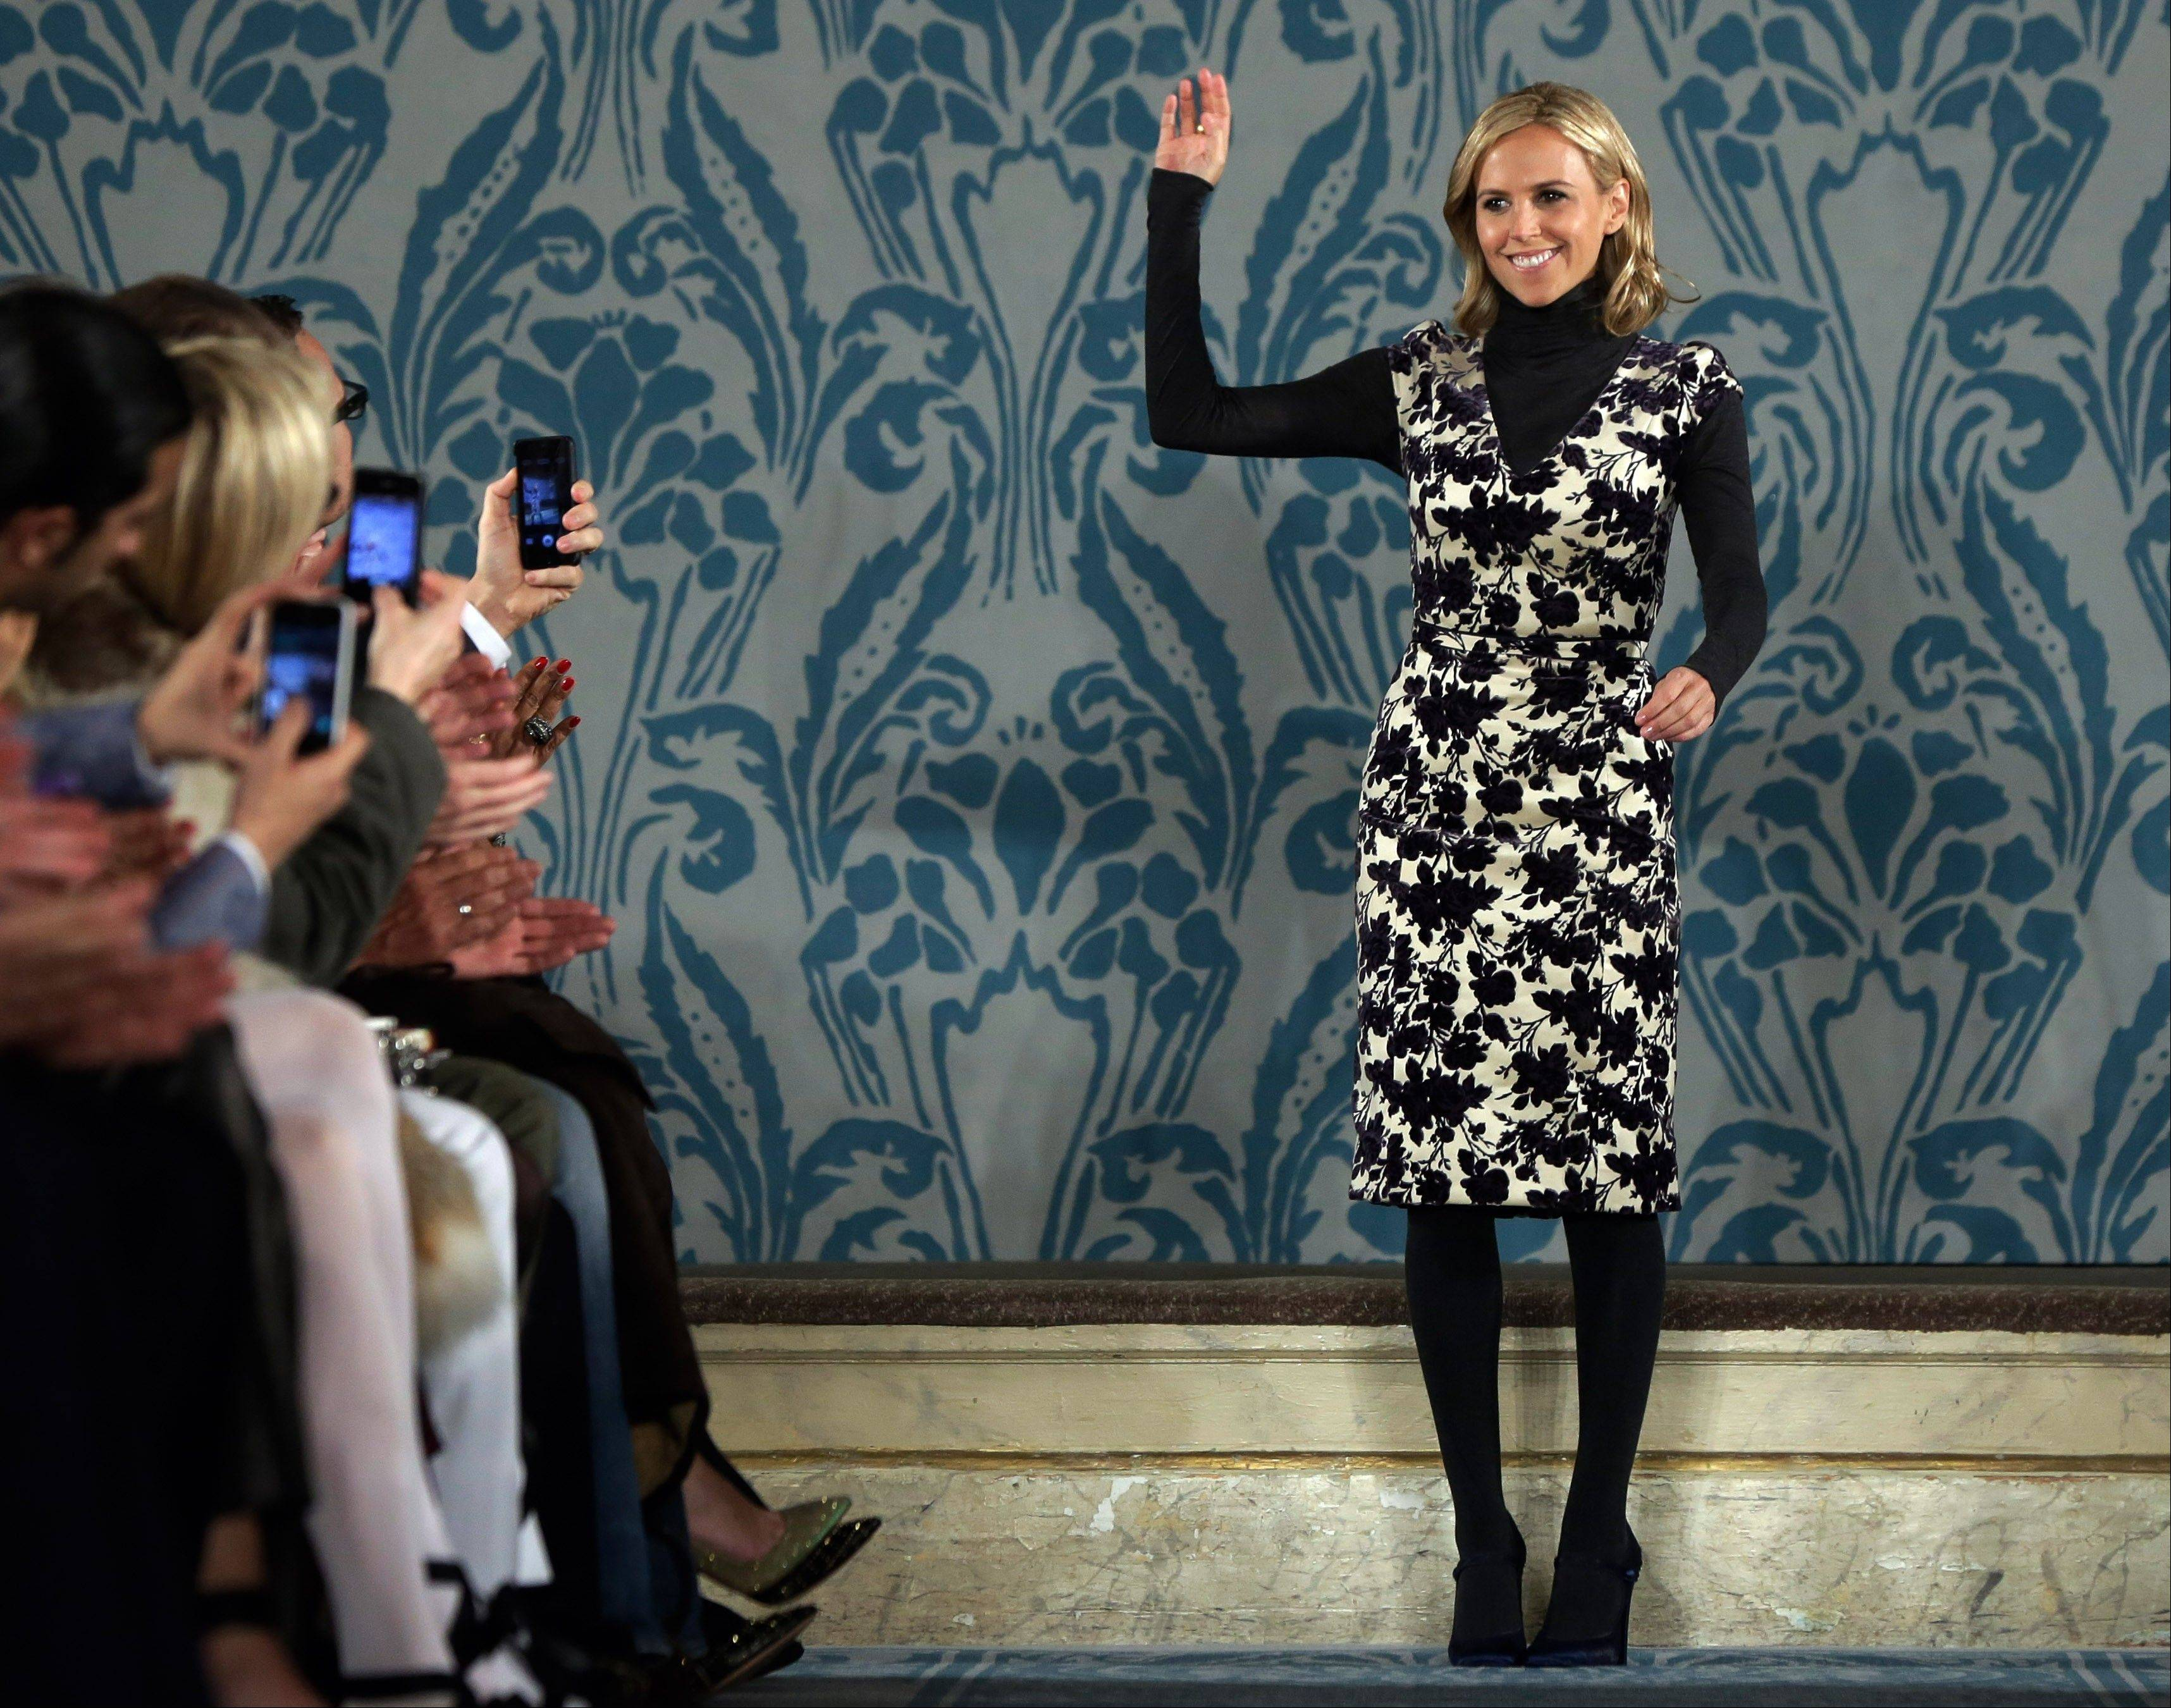 Designer Tory Burch is now in the beauty business, the latest in a string of designers expanding their labels into a full face-to-toe look.